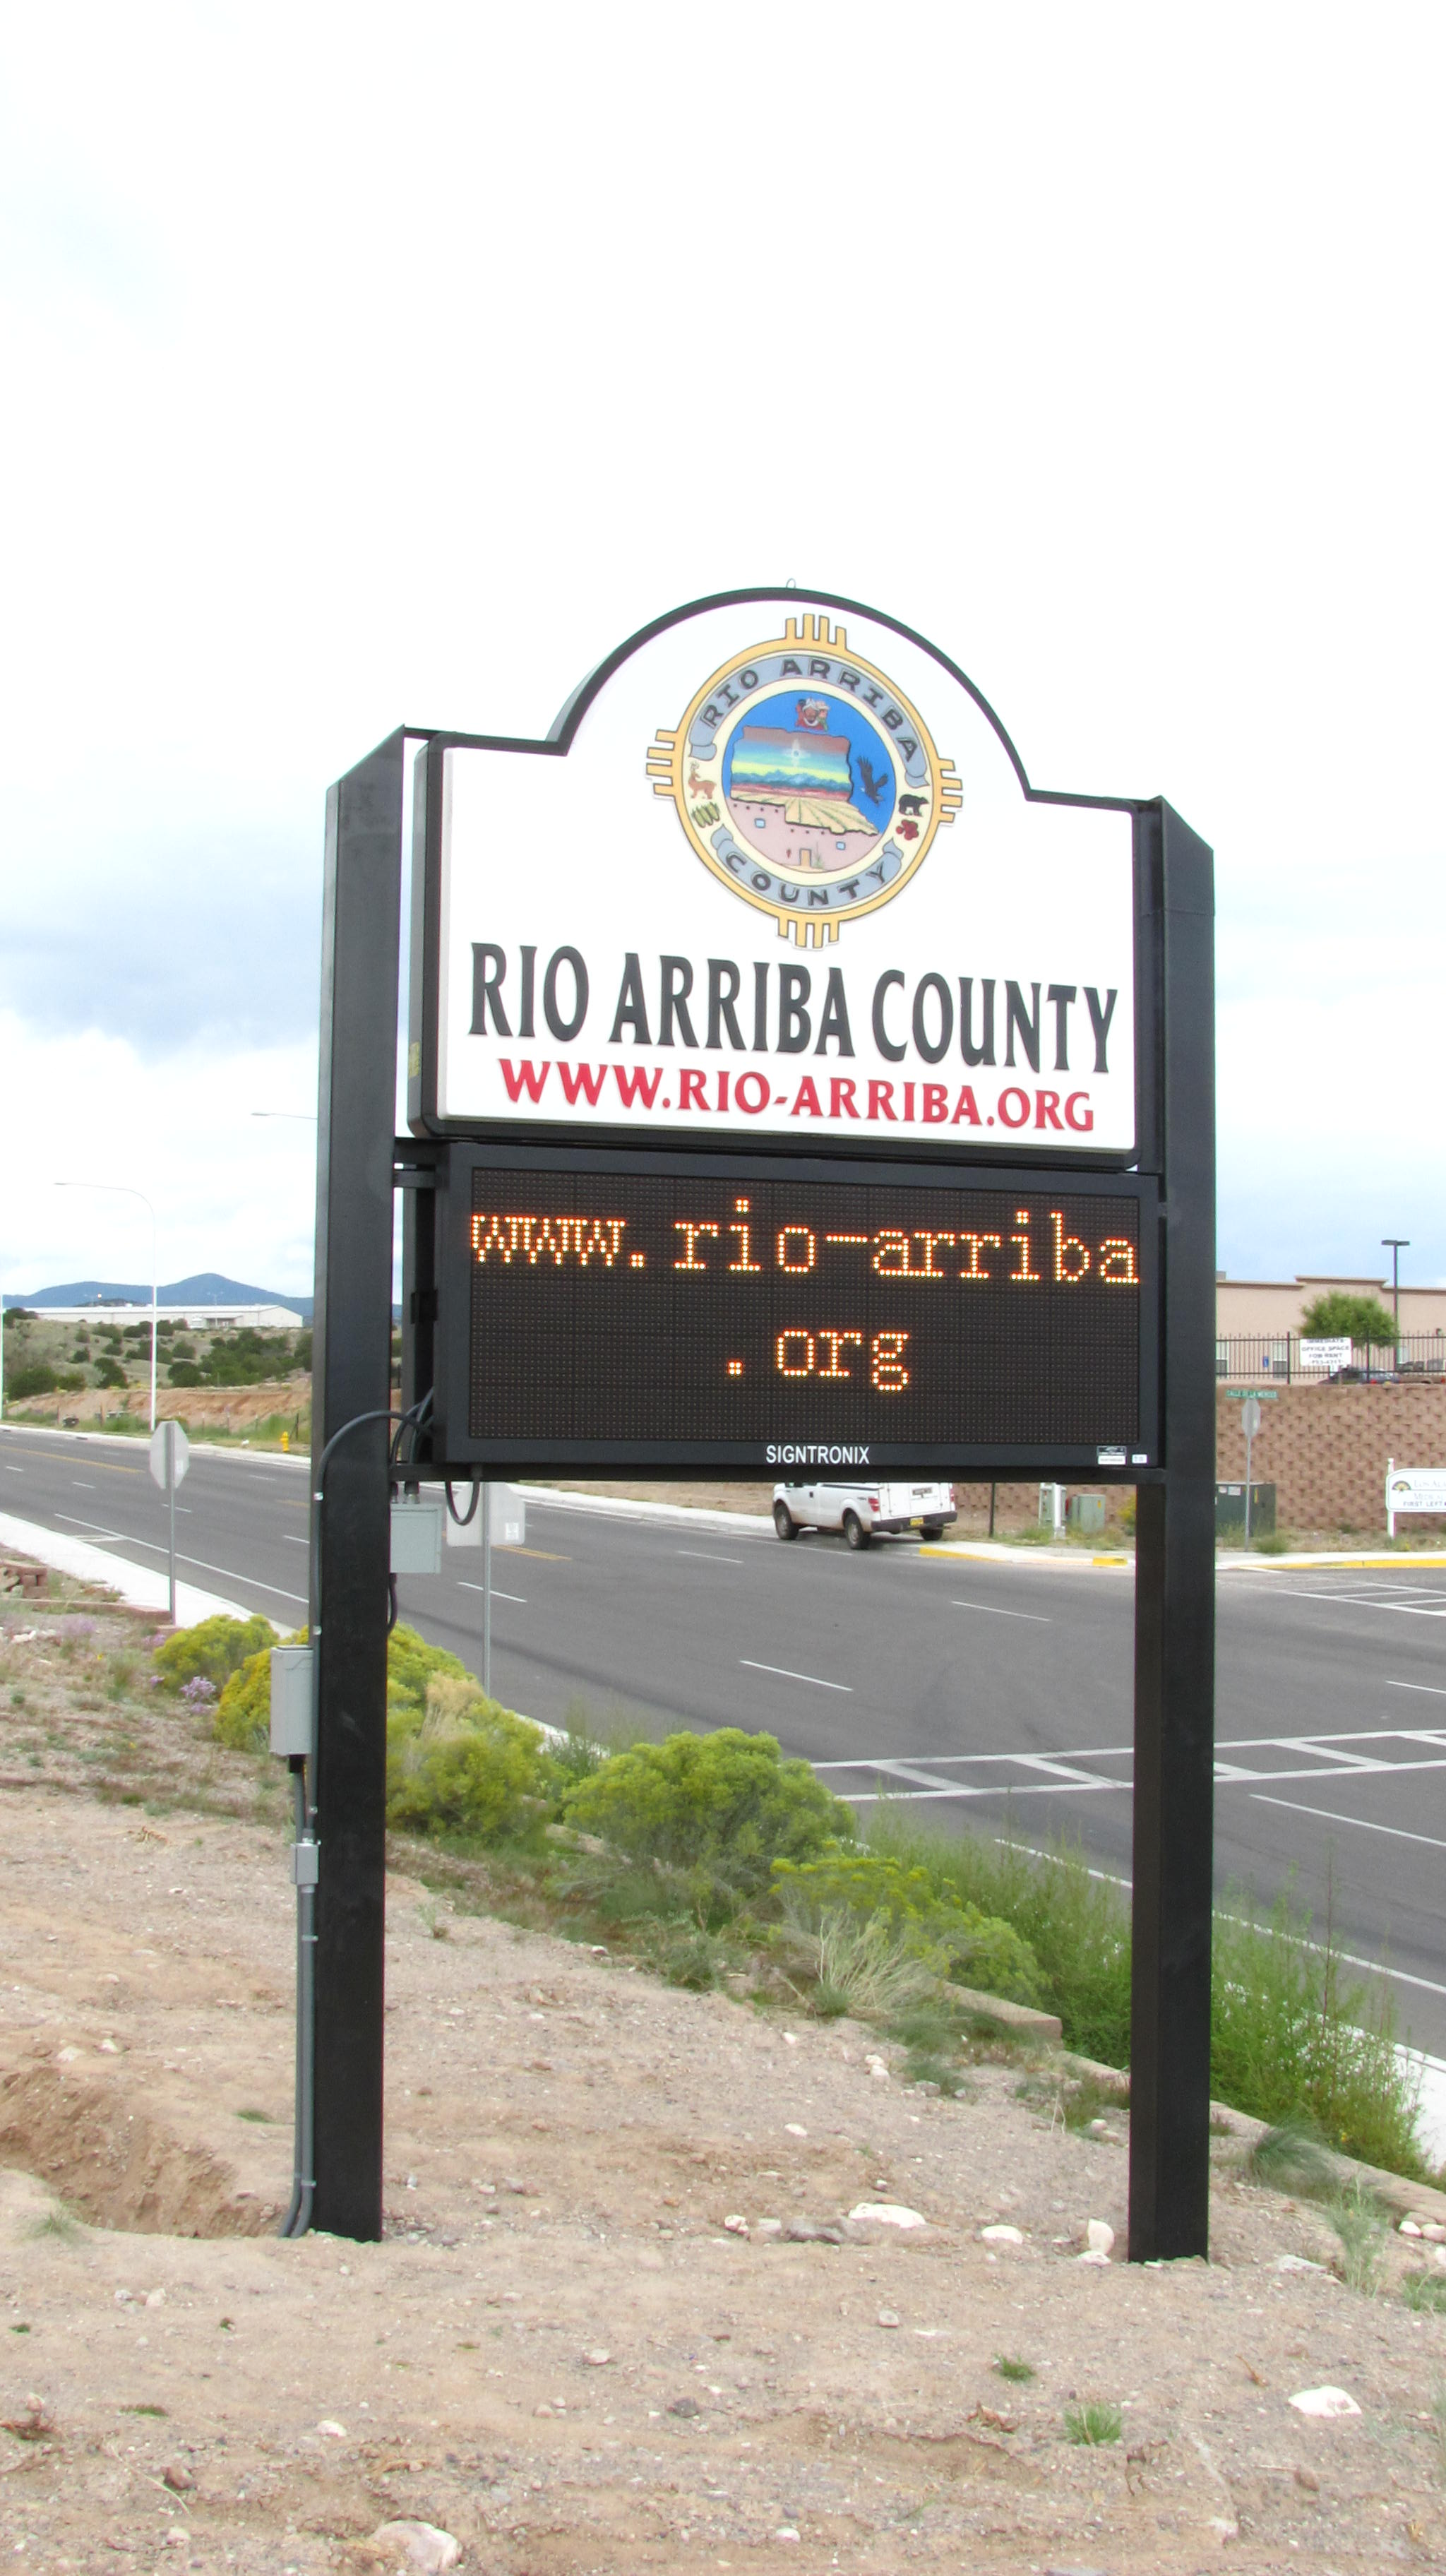 buddhist singles in rio arriba county The rio grande basin from the rio arriba-sandoval county line, n mex, to presidio, tex (fig 1), an area of about 26,000 square miles, is characterized as arid or semi.